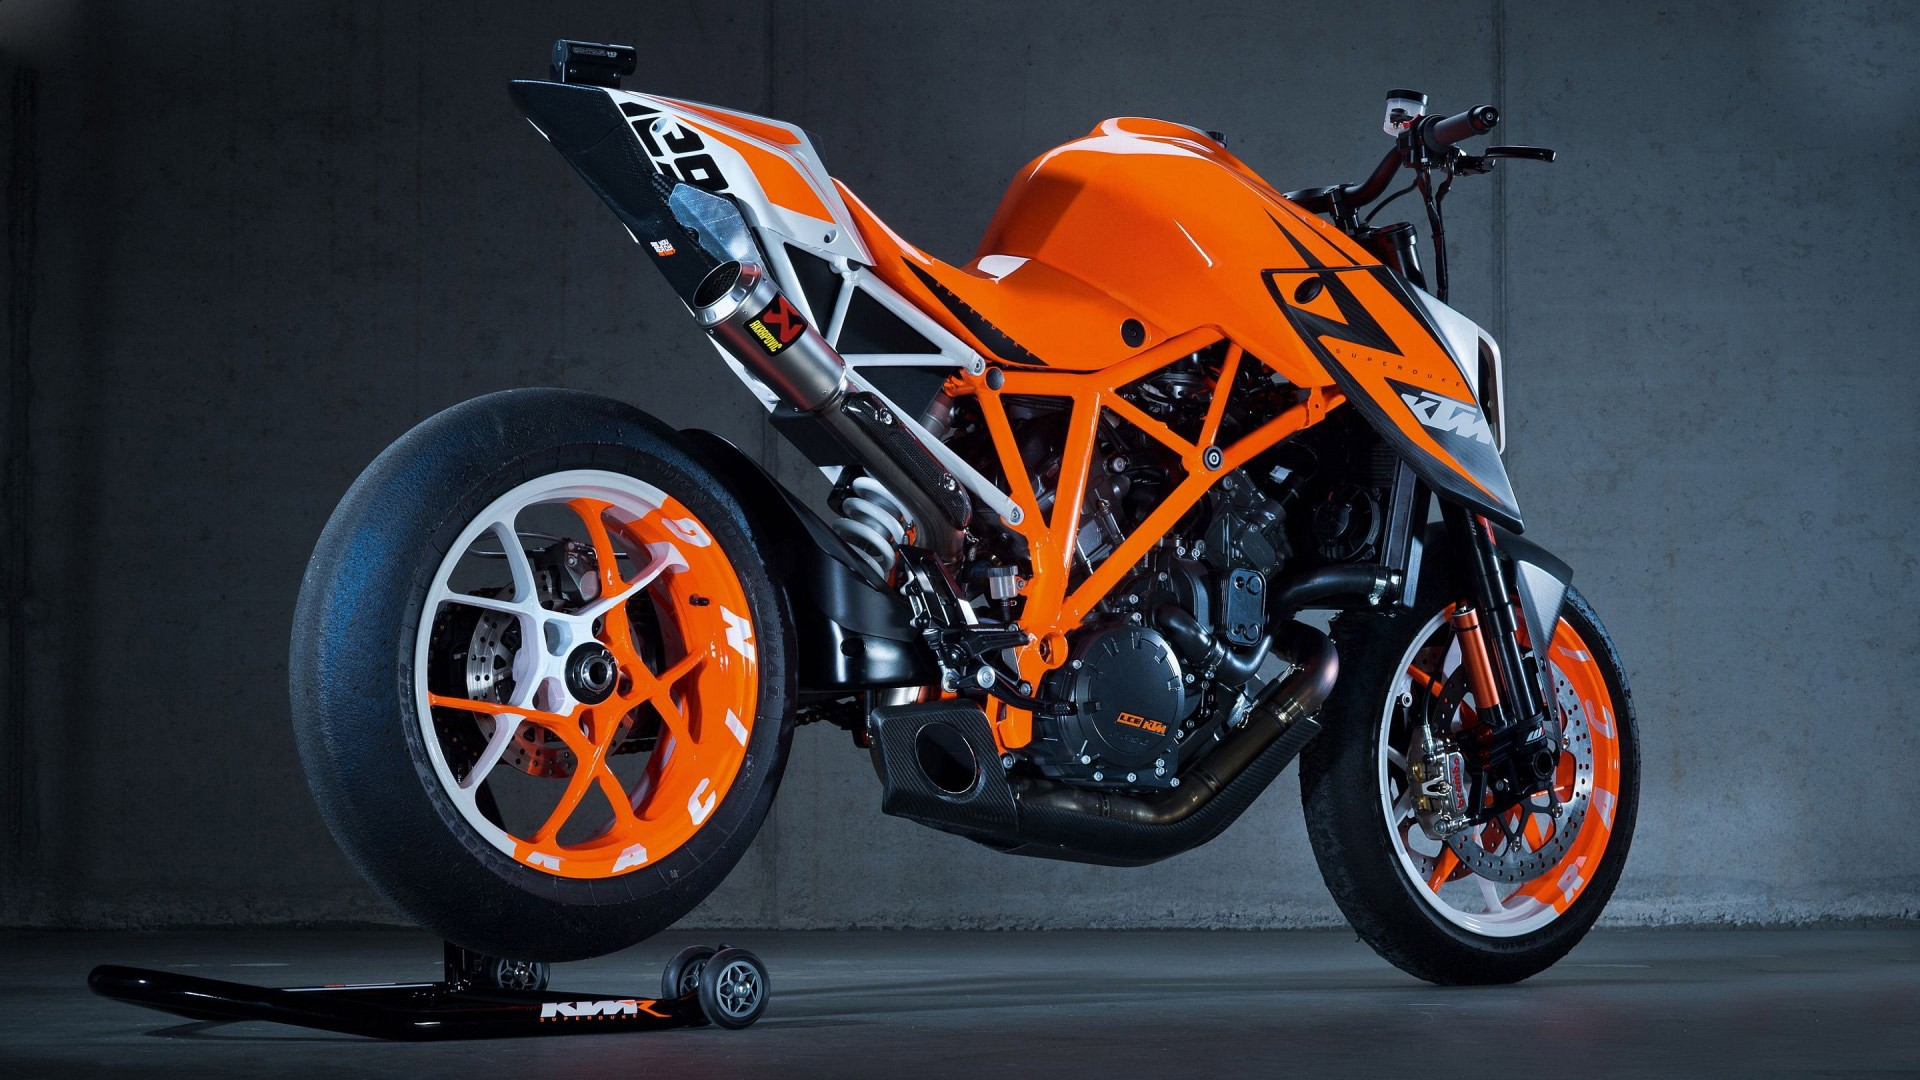 KTM-Super-Sport-Bike-1920×1080-wallpaper-wpc5806608